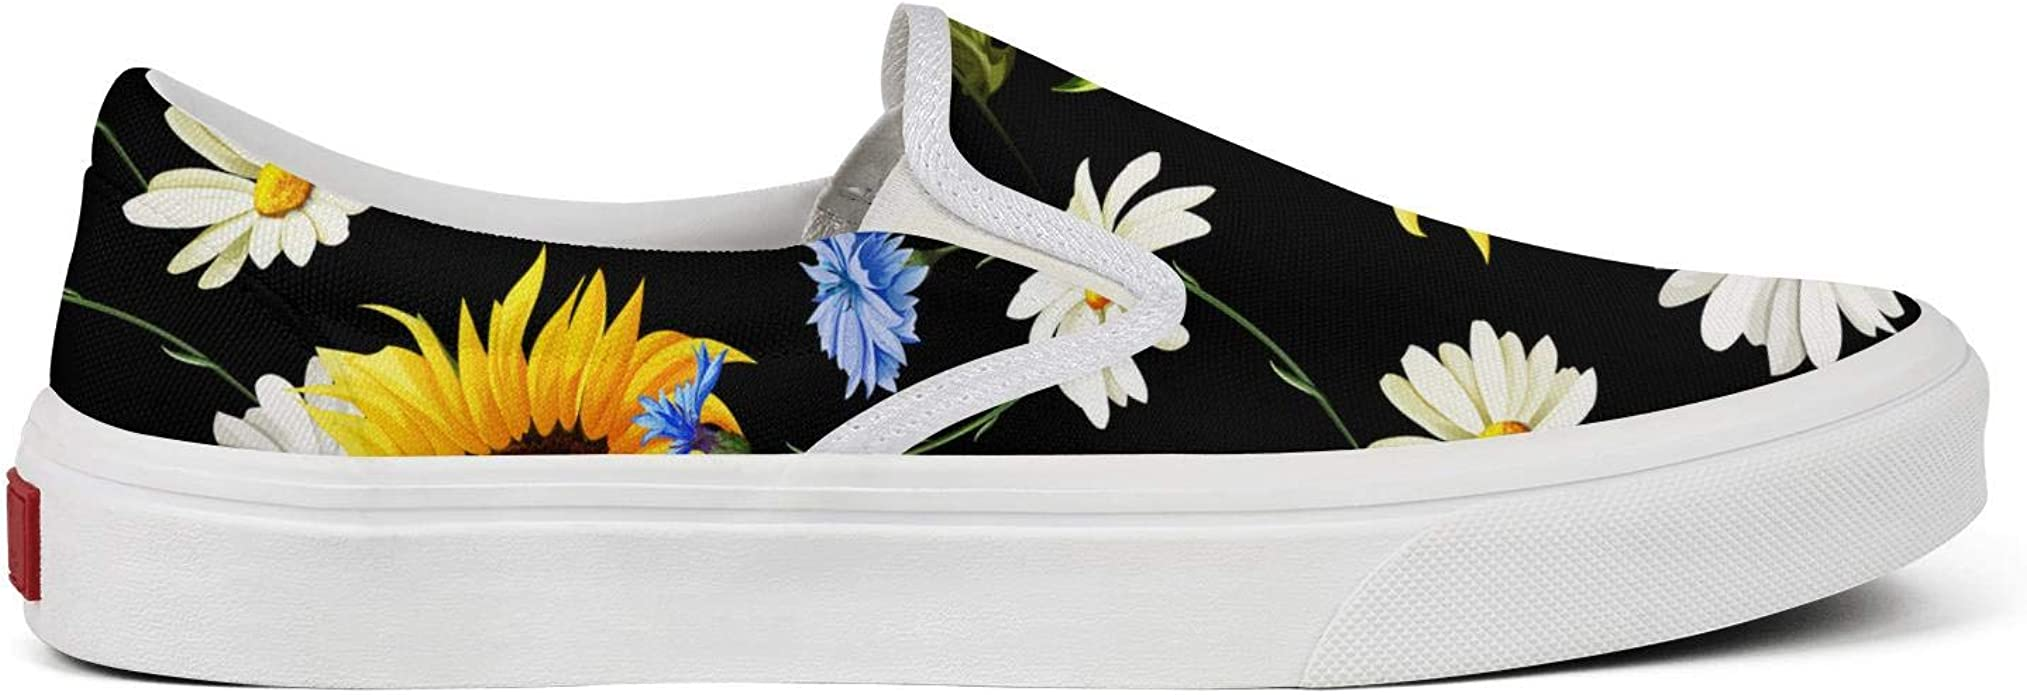 Seamless Sunflowers Chamomile Camomile Classic Womens Canvas Slip-On Shoes Sneaker